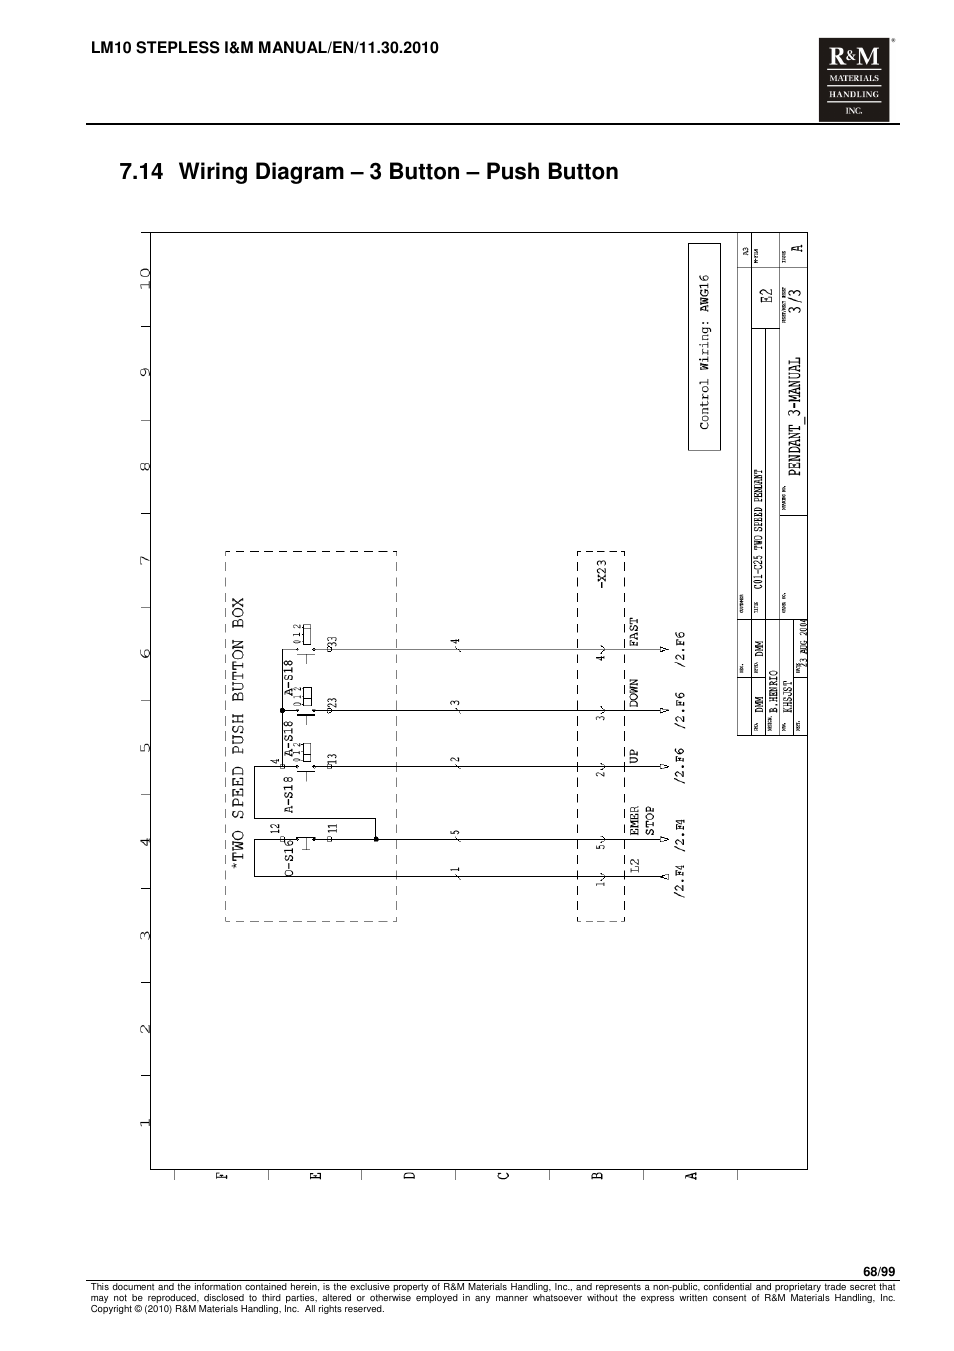 Pendant Wiring Diagram Lm 10 Residential Electrical Symbols 277w Box 14 3 Button Push R M Materials Handling Rh Manualsdir Com Light Fixture Lighting Control